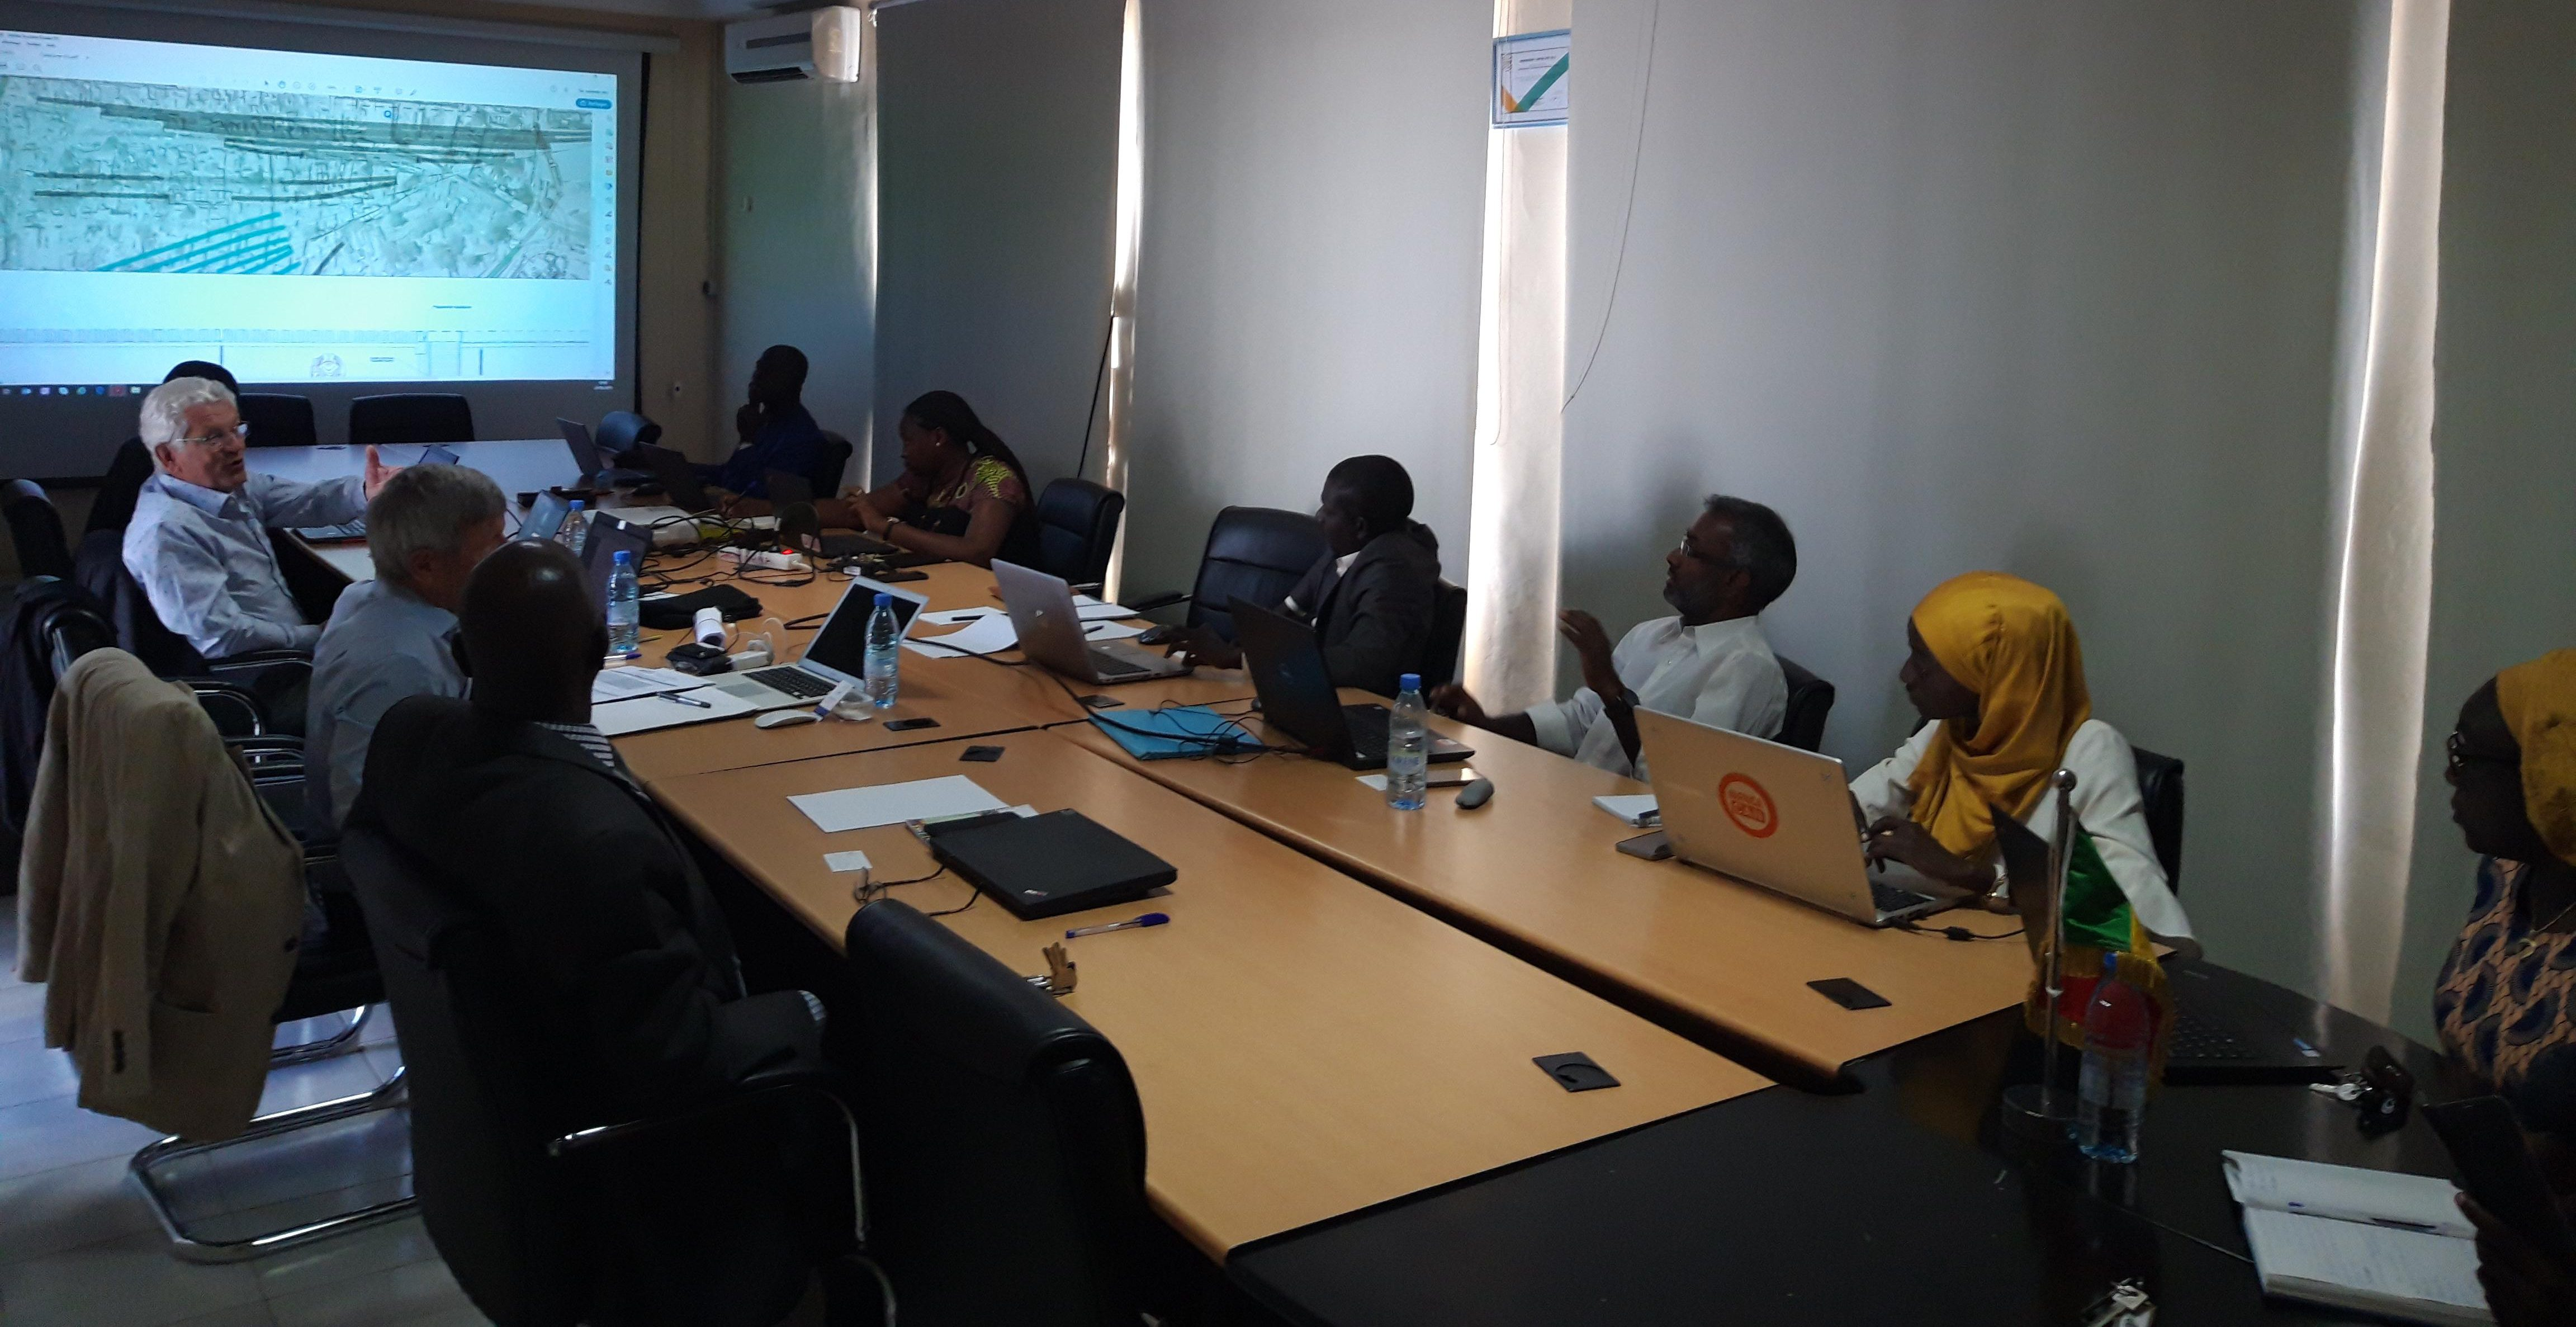 Mission report: CODATU in Dakar to work with APIX and CETUD on feeder service